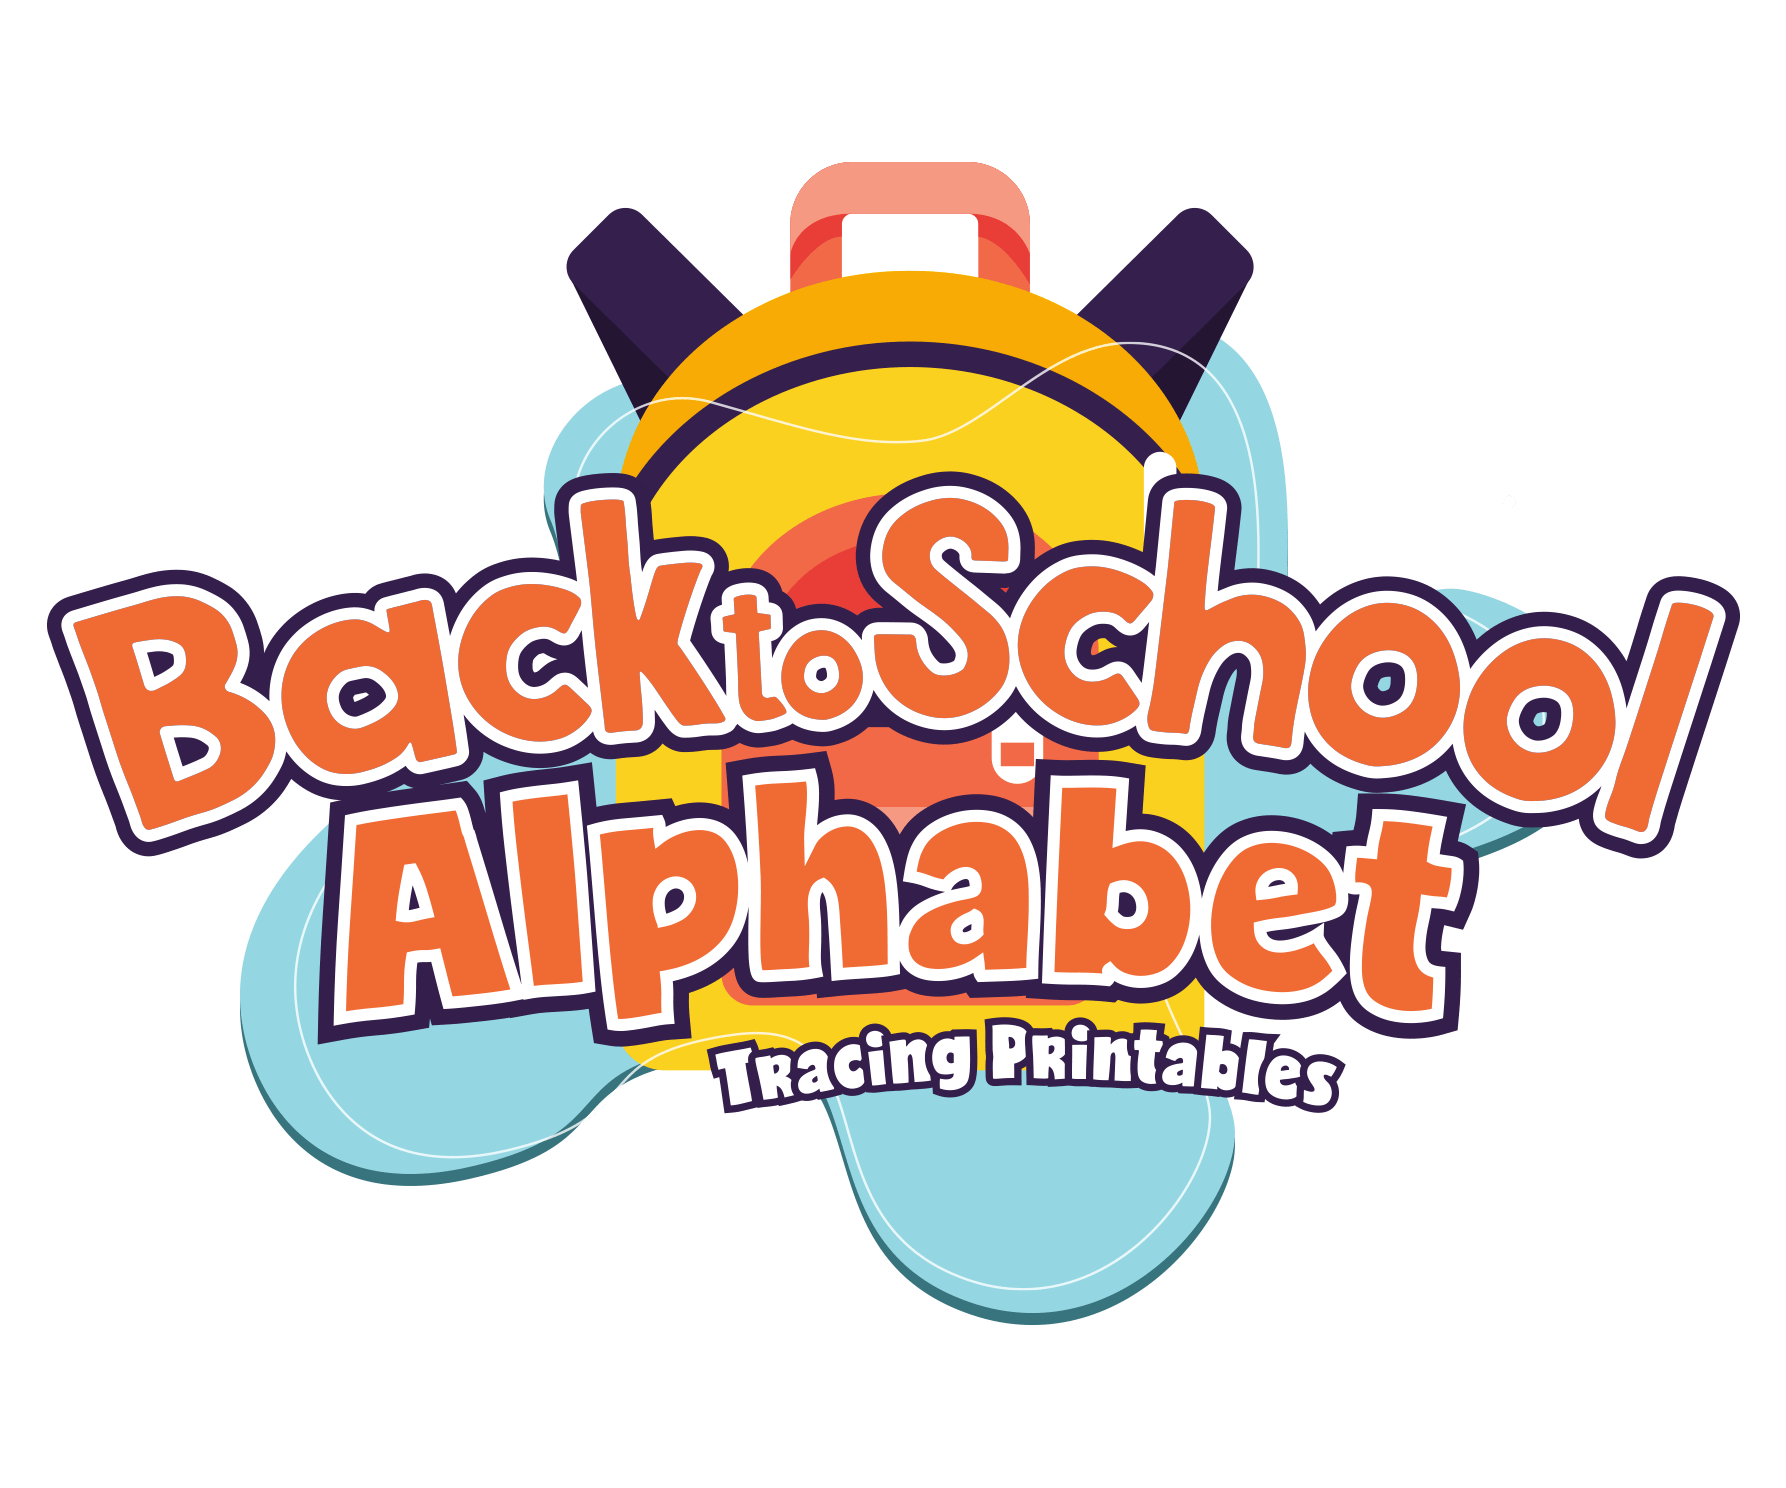 Back To School Alphabet Letter Tracing Pack For Preschoolers